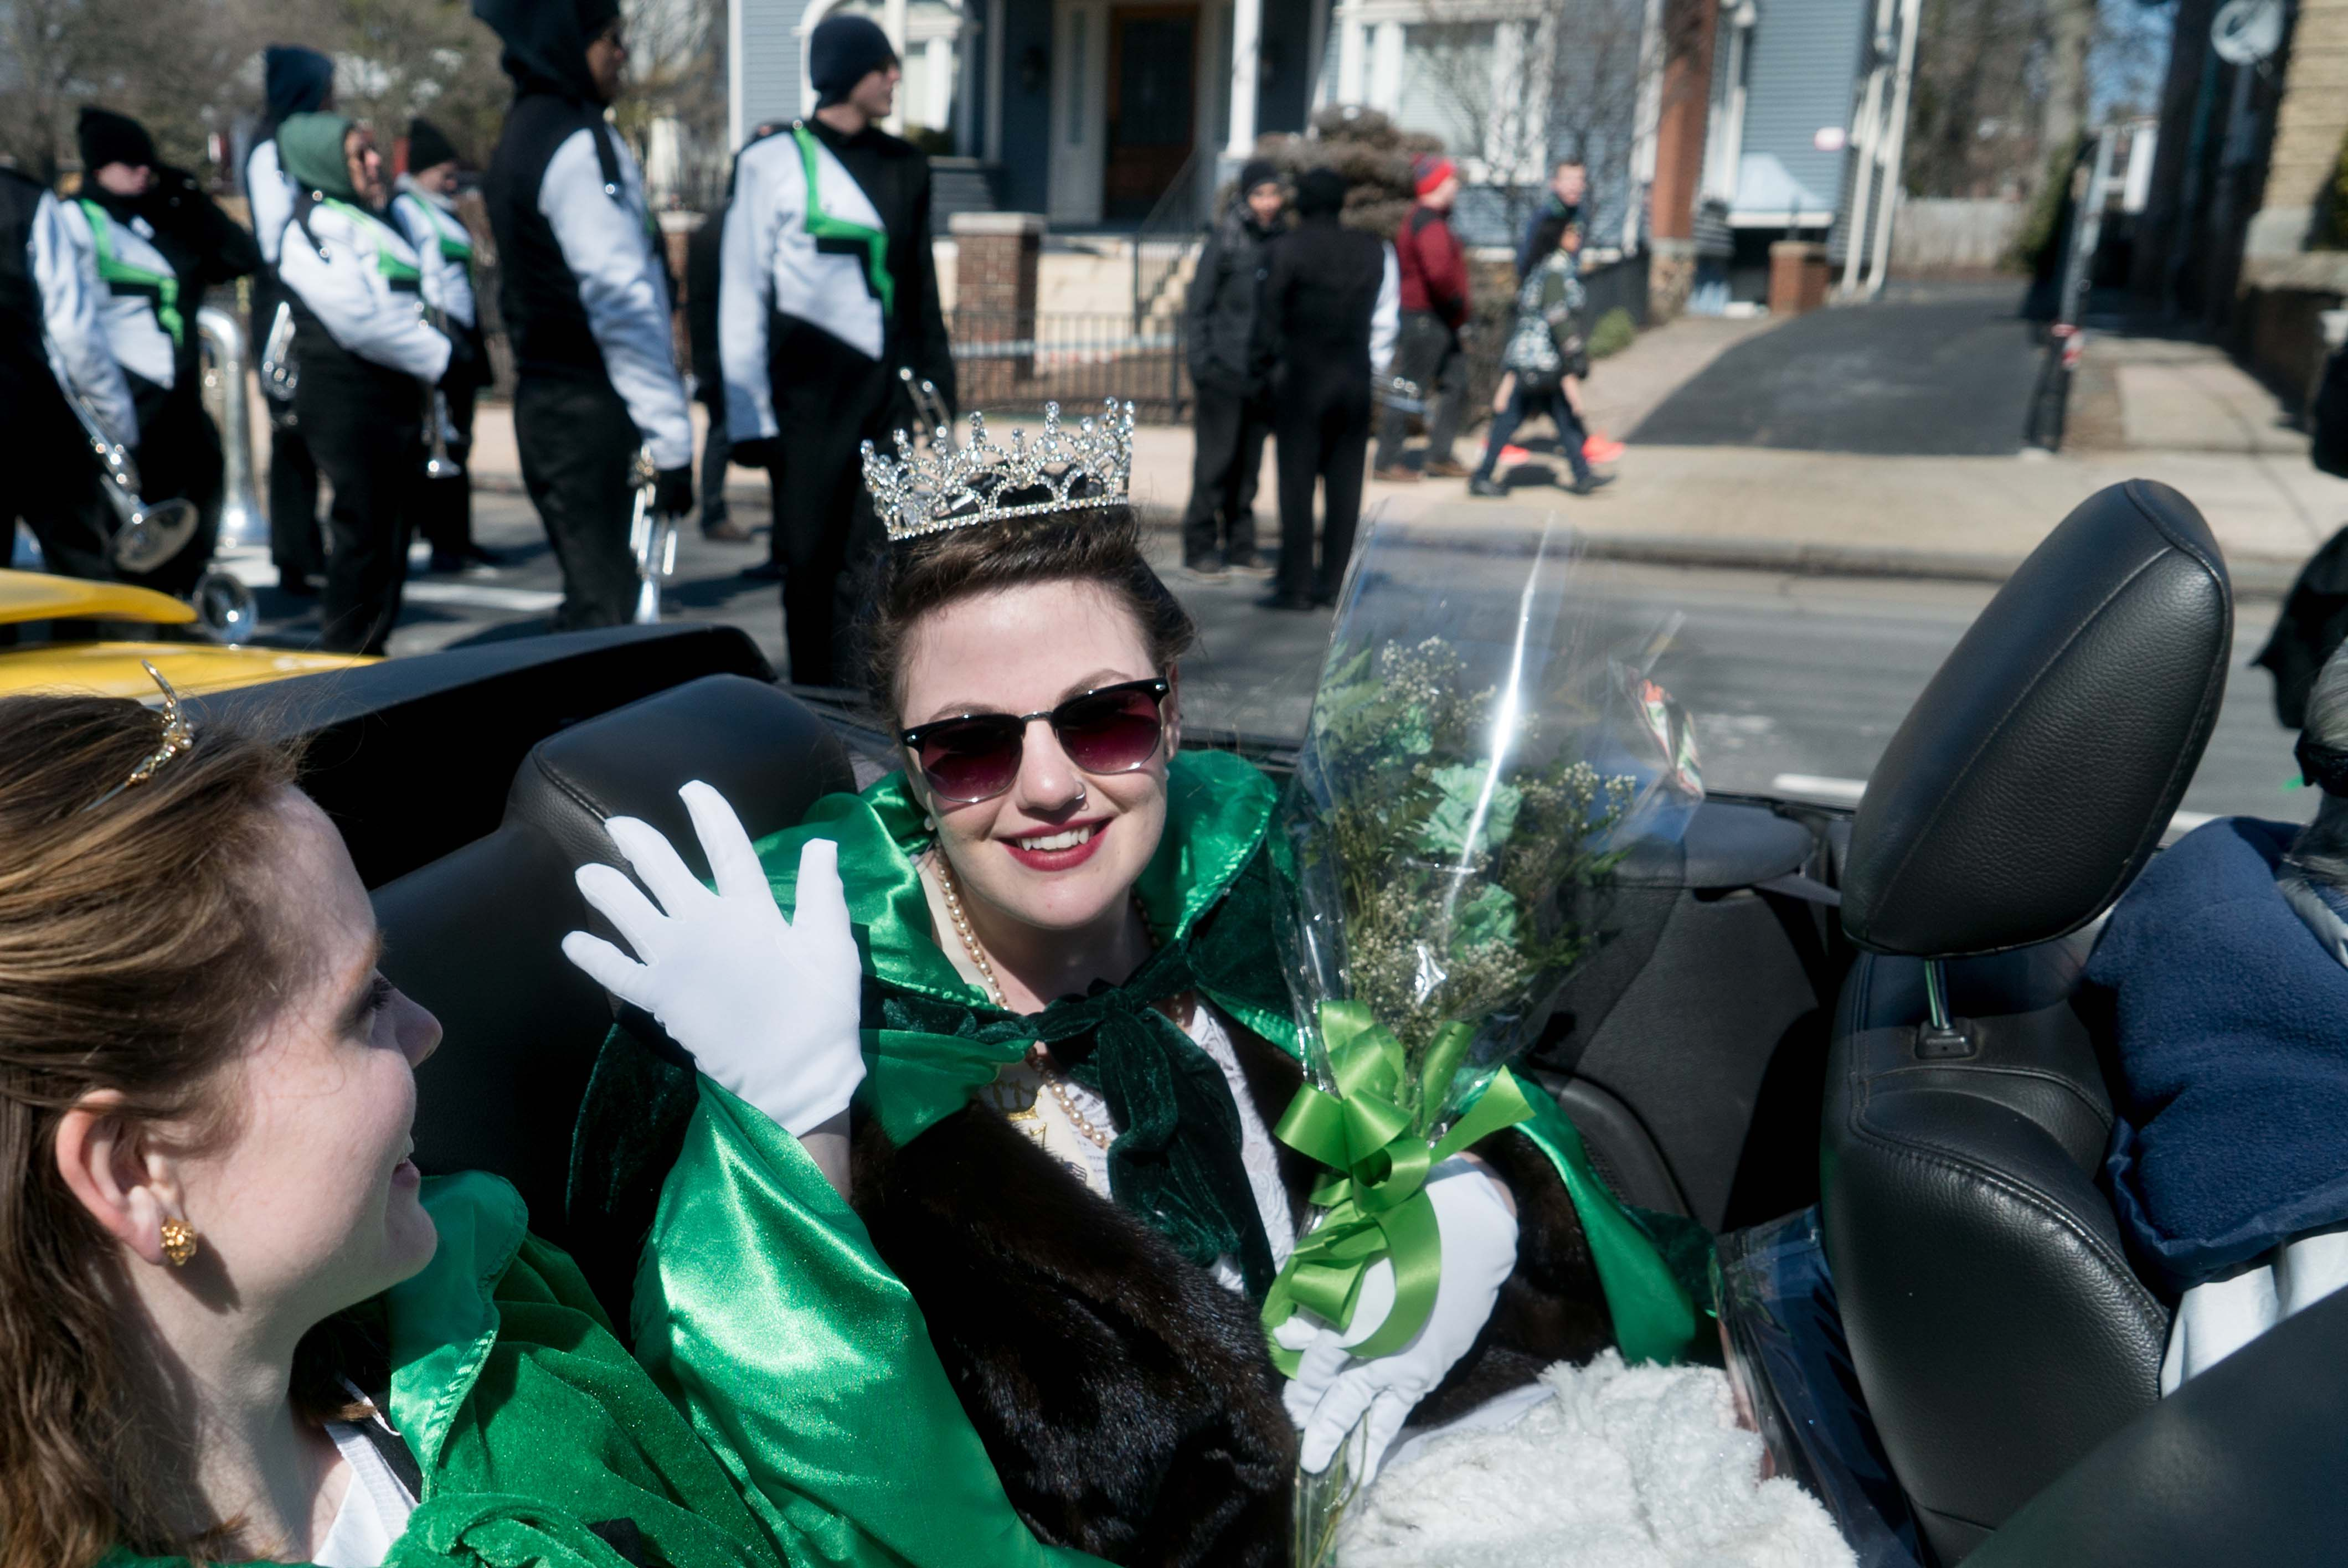 Journalism student named St. Patrick's Day Parade Queen